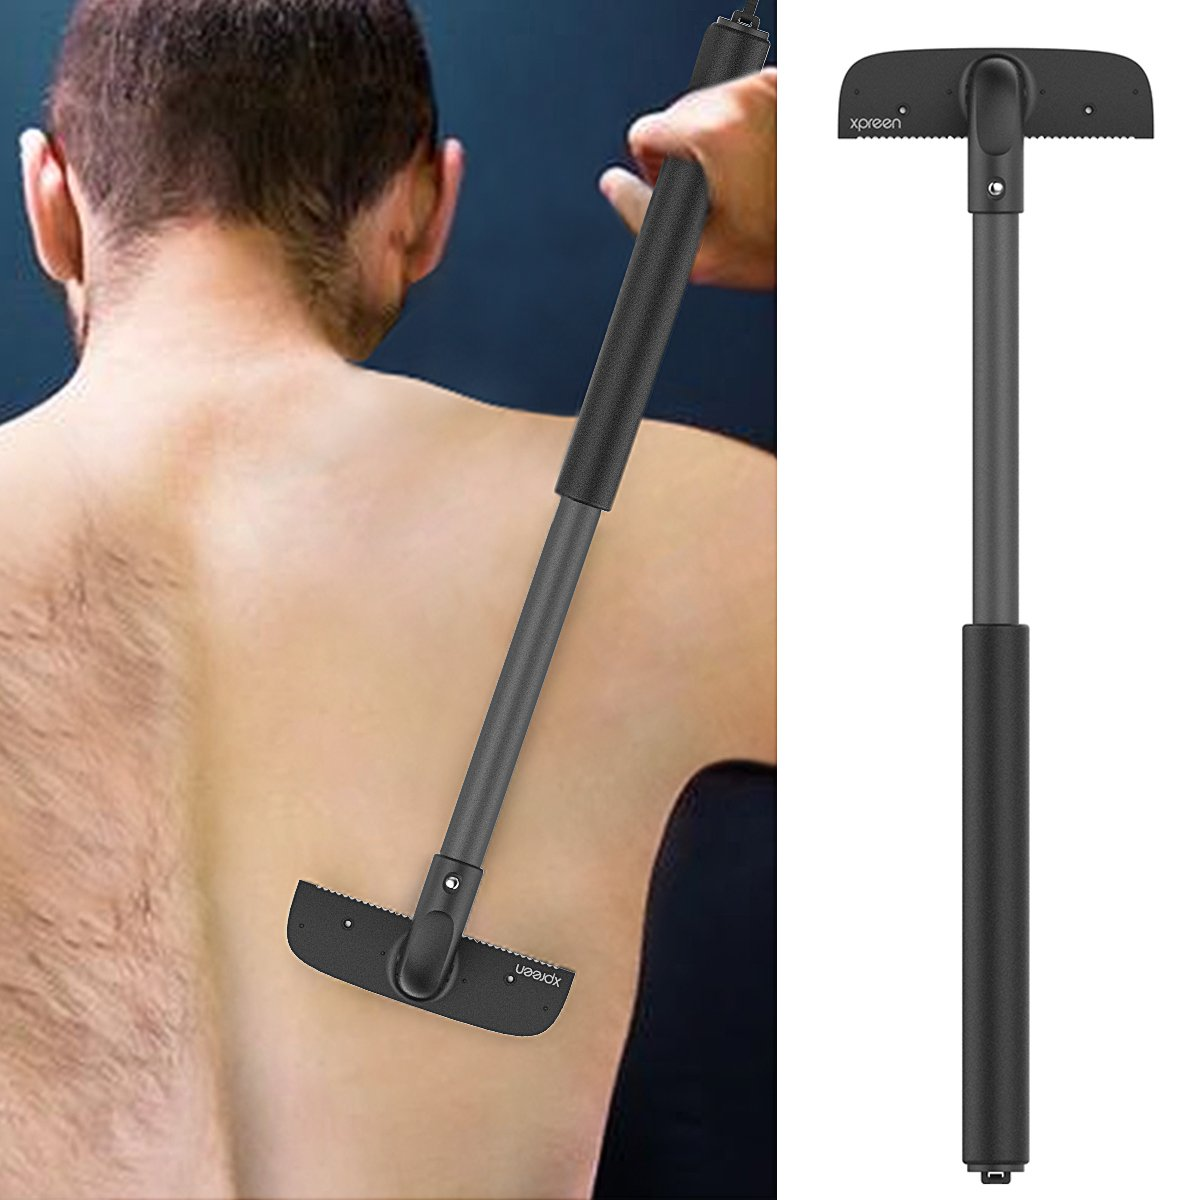 Back Shaver, Xpreen Stretchable Back Shavers for Men High-quality Replaceable Back Razor